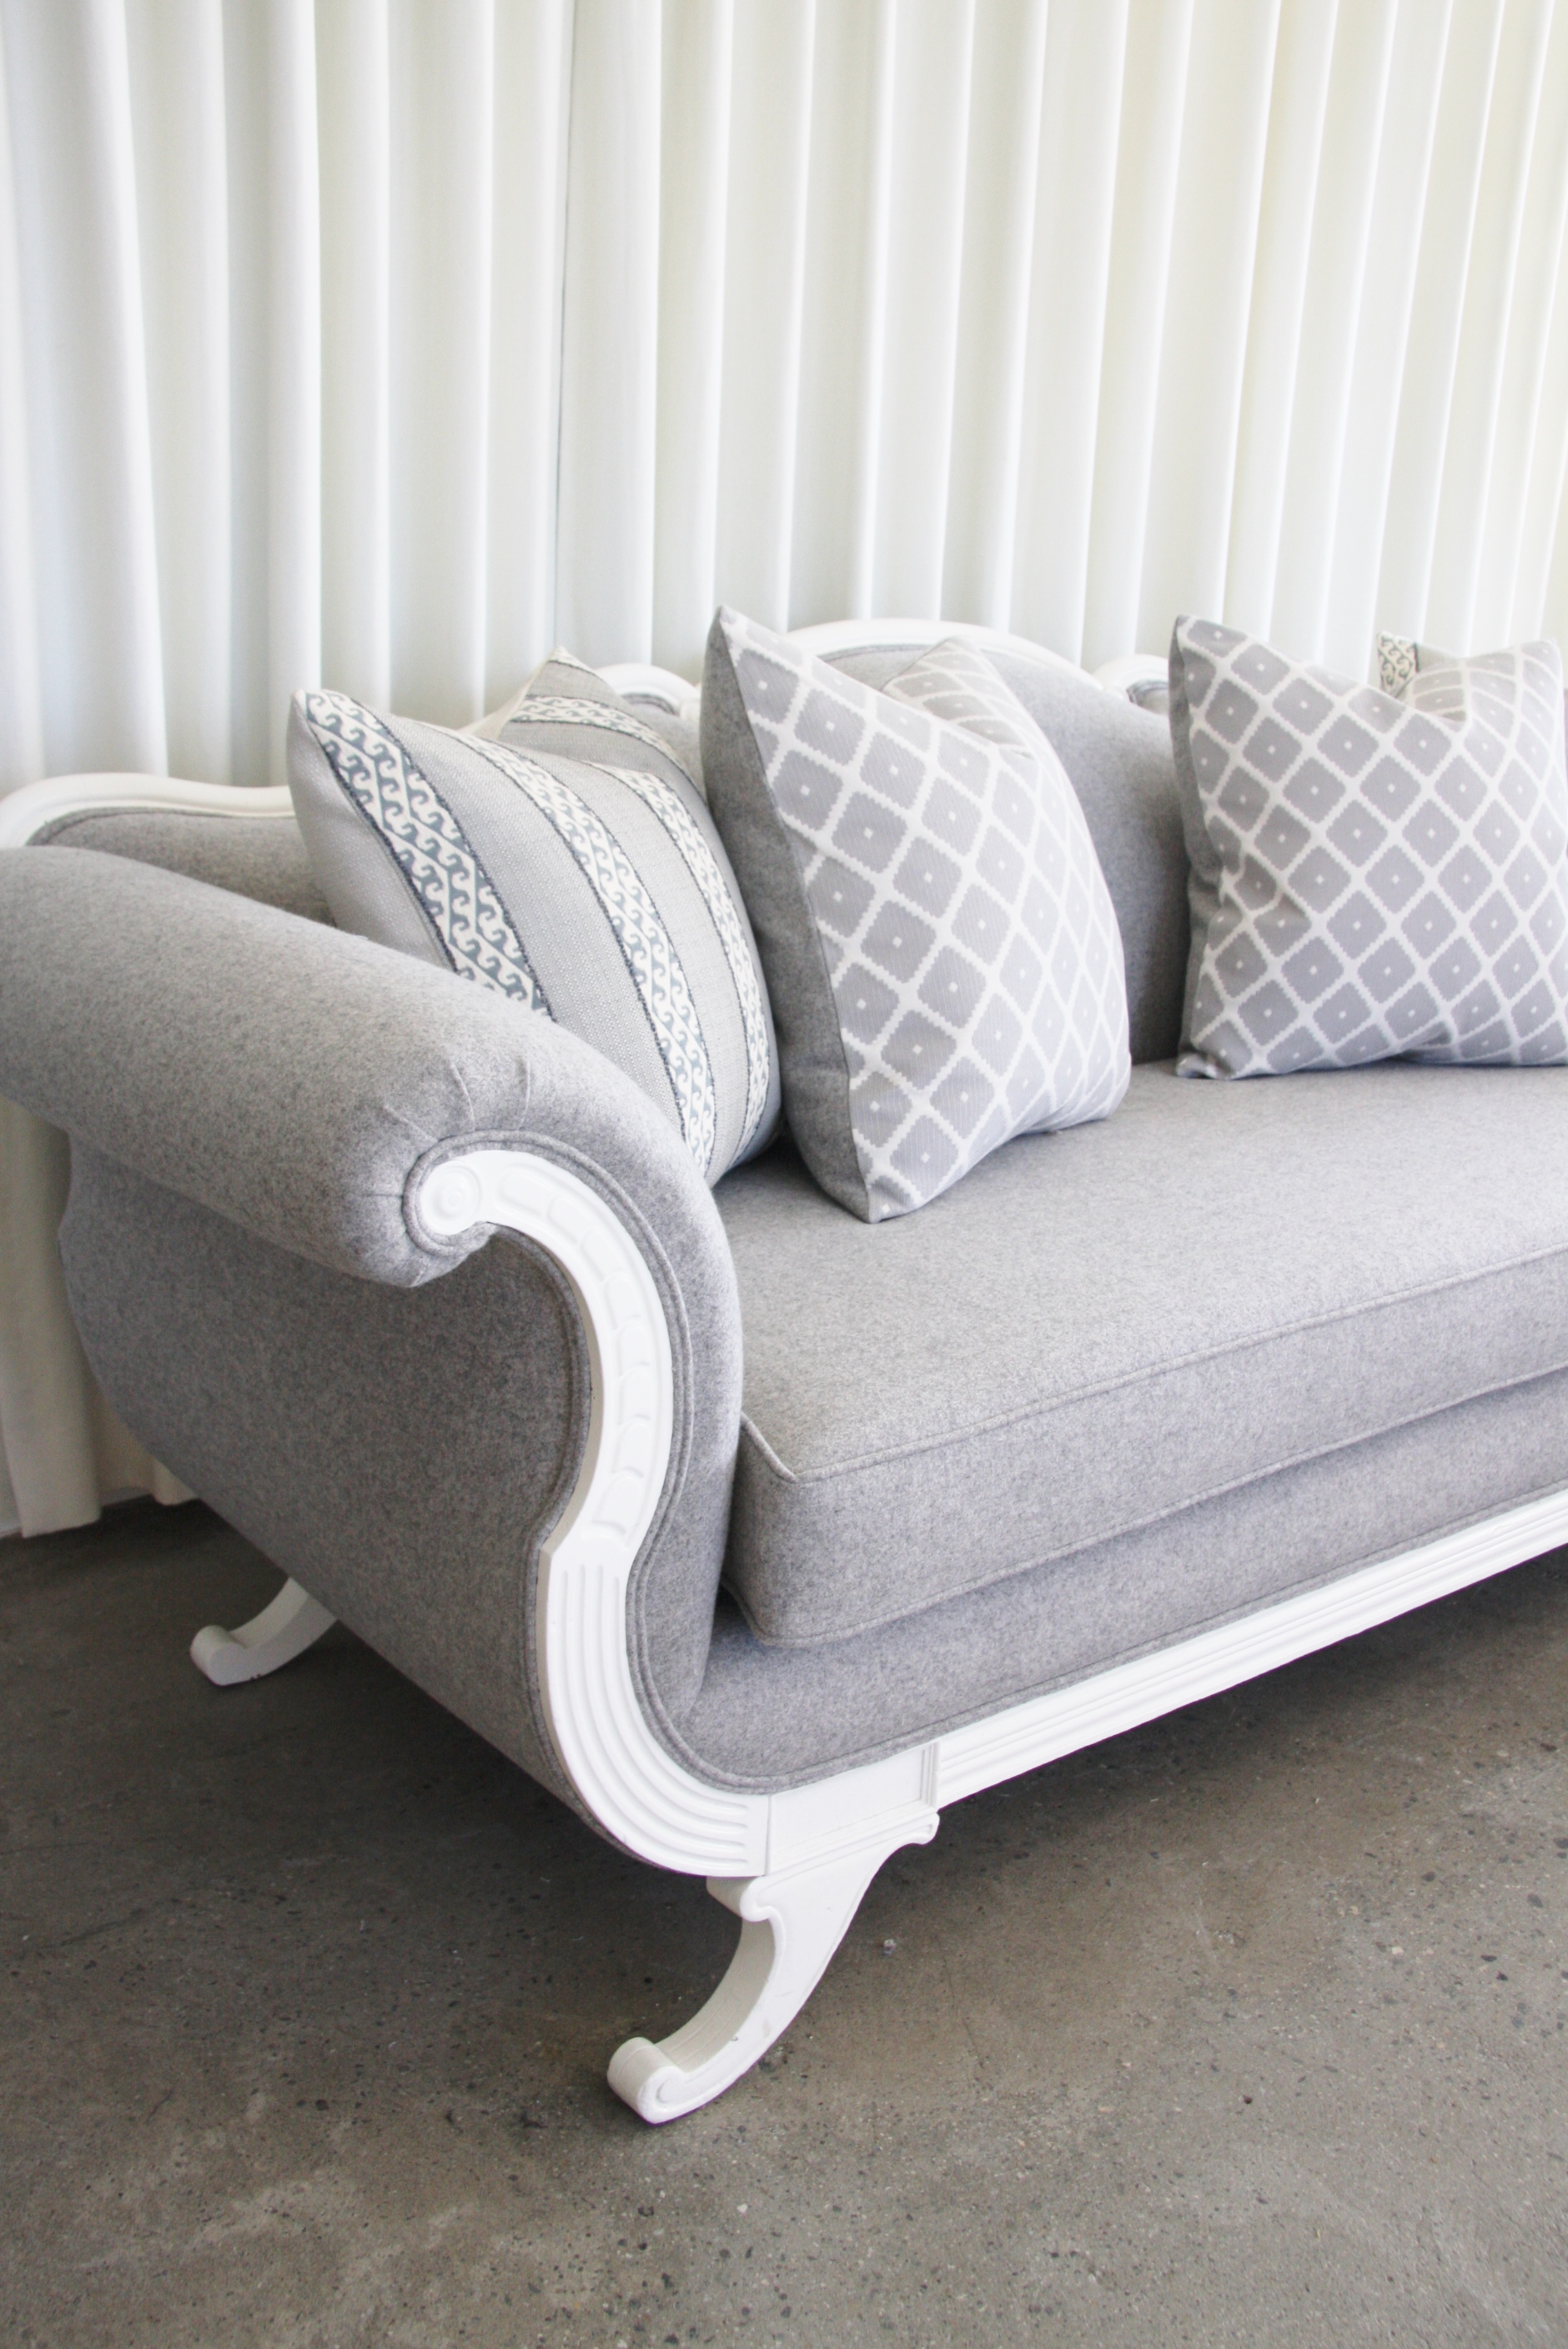 Fresh toss pillows sit atop a restored antique sofa, upholstered in grey wool featuring double piping trim. Lacquer painted wood.